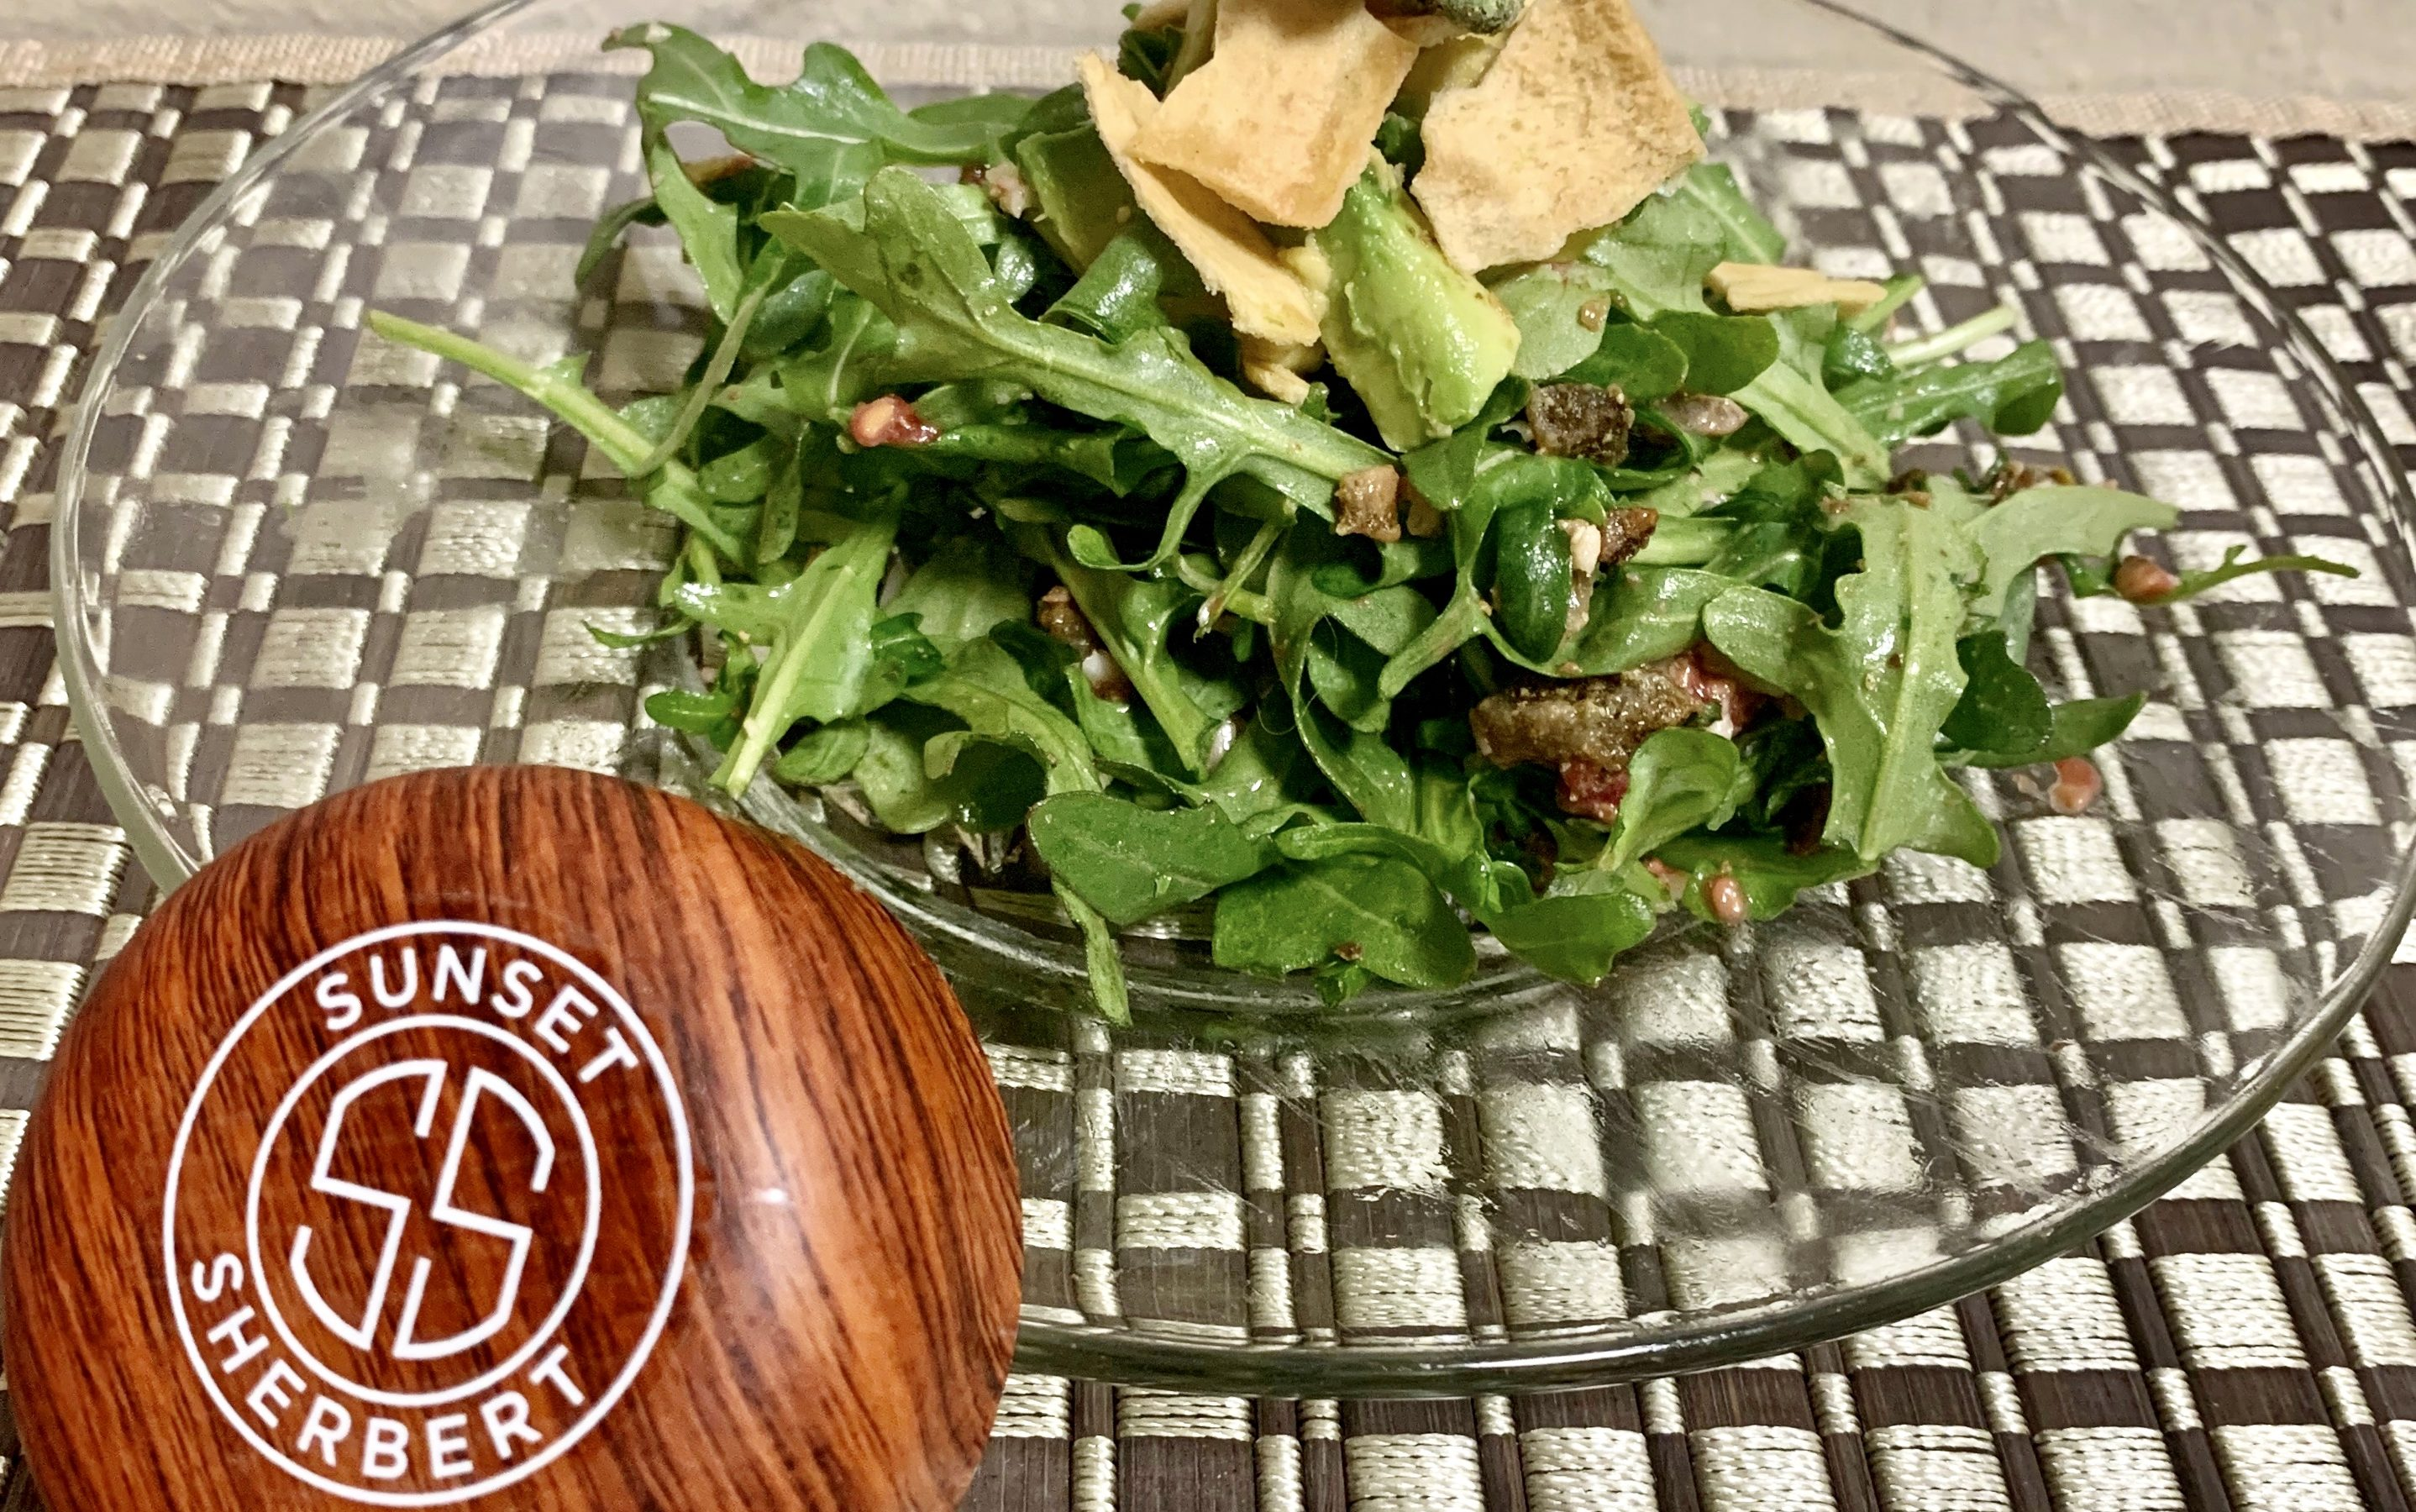 Comfort Food & Cannabis by The Woods – Sunset Salad